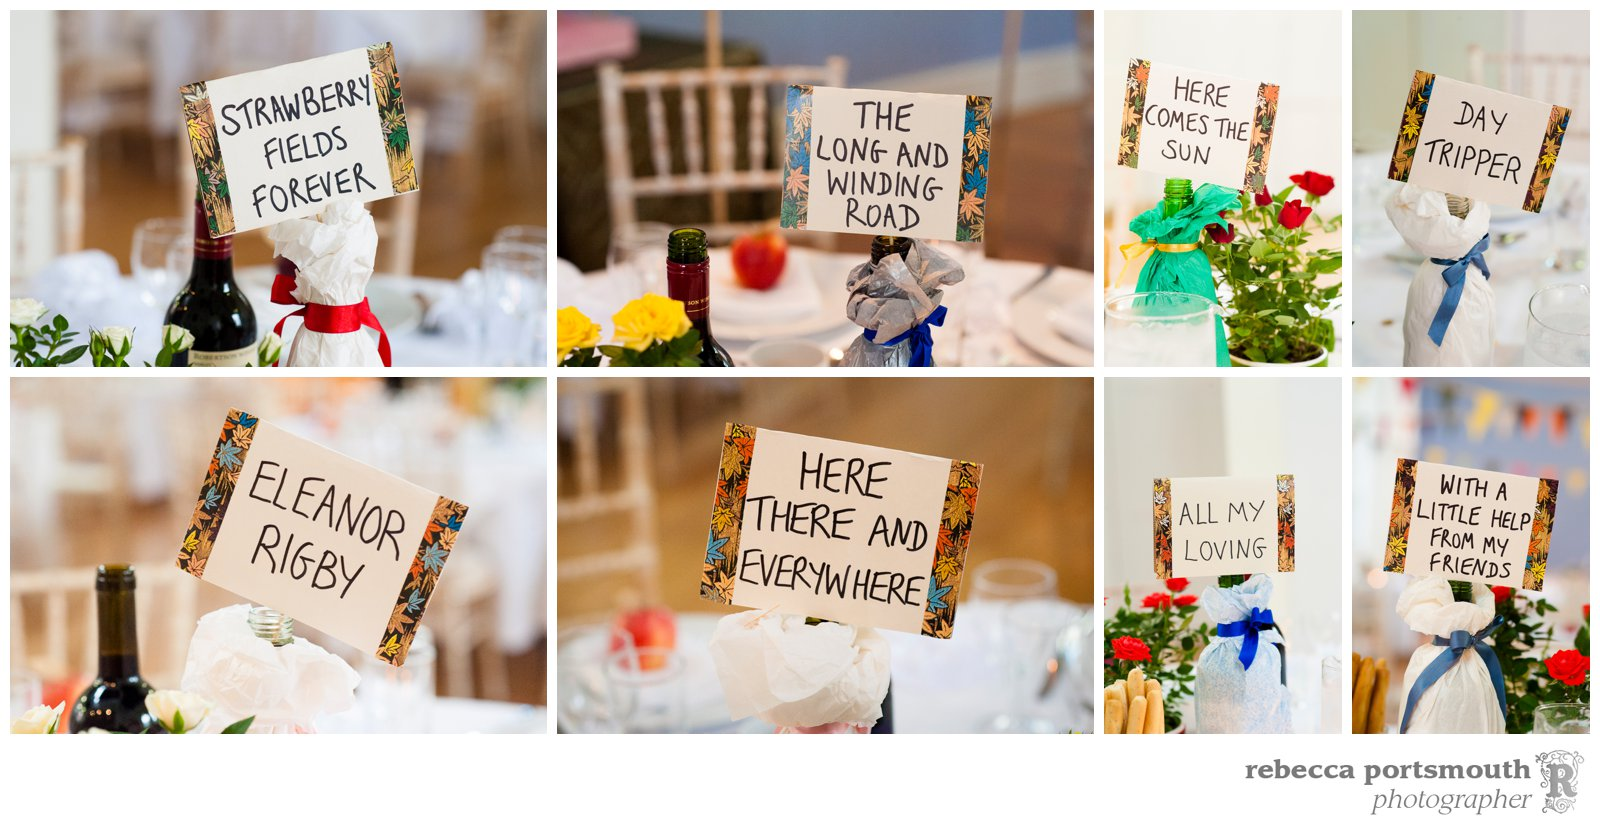 Beatles songs feature as table names at this handmade wedding in Cambridge.